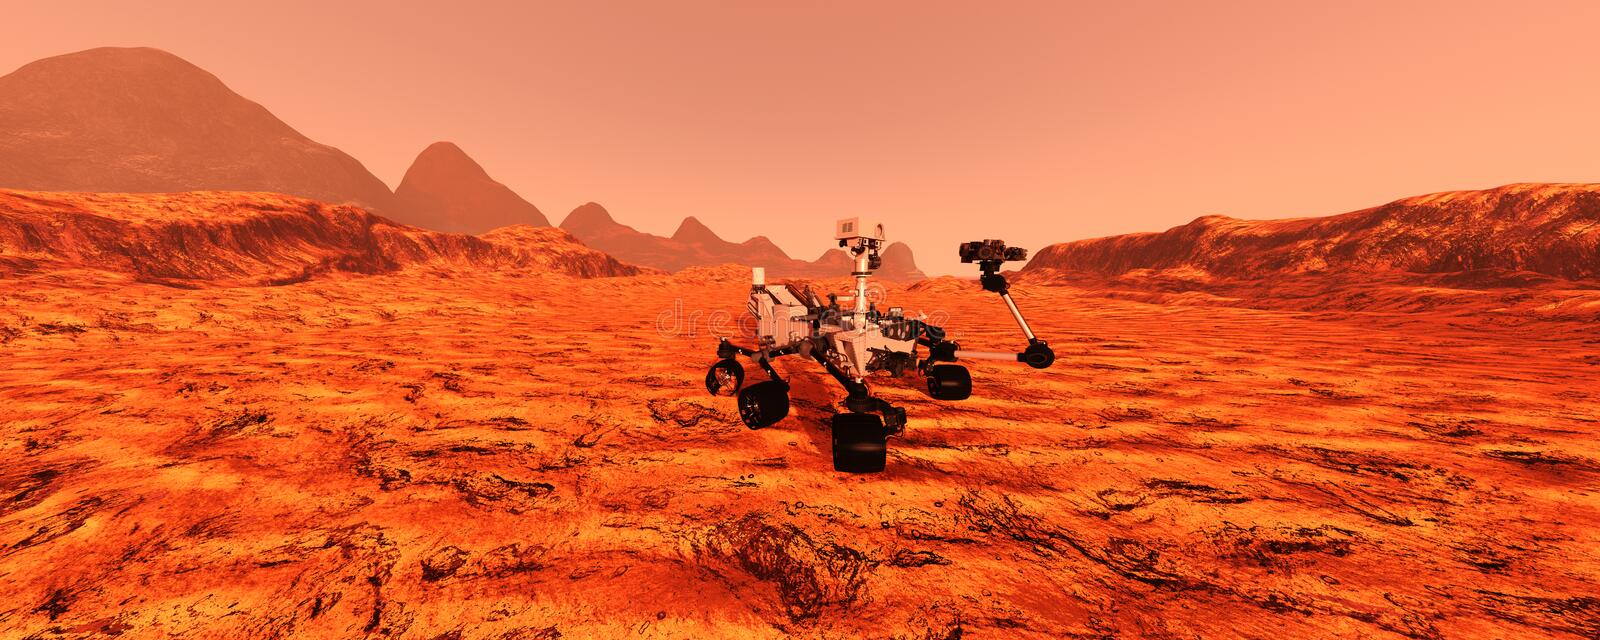 3D Rendering Mars Rover royalty free stock images